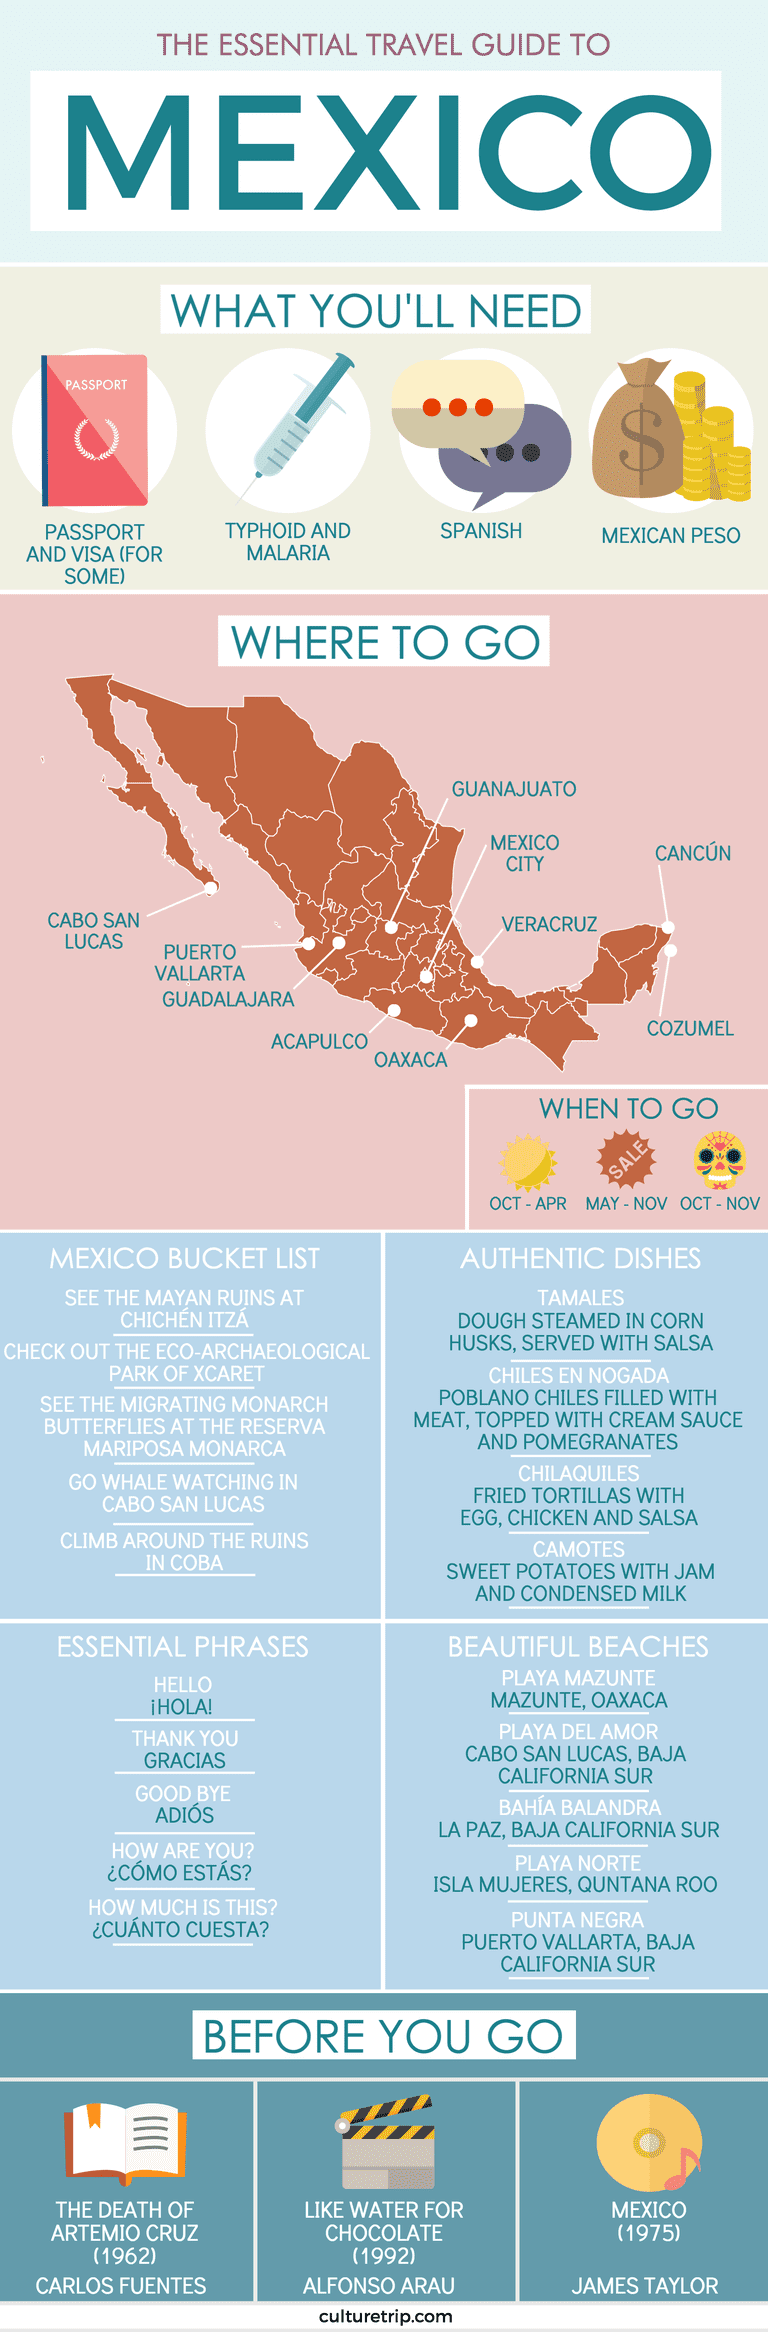 The Essential Travel Guide To Mexico (Infographic)